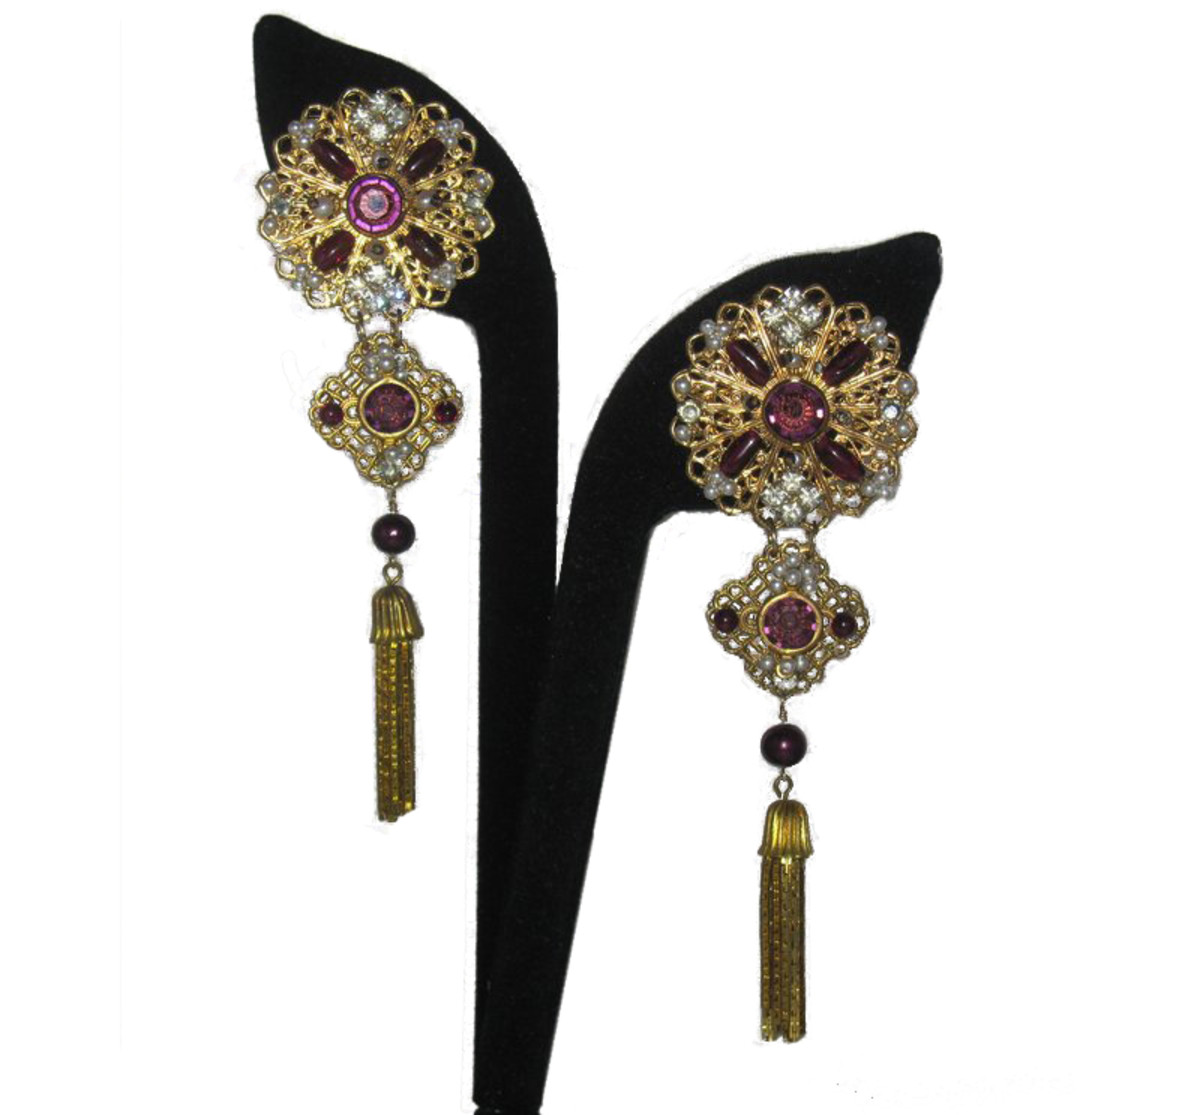 Vintage-inspired, one-of-a-kind, extremely dramatic formal drop earrings, a custom commission for a mother of the bride.